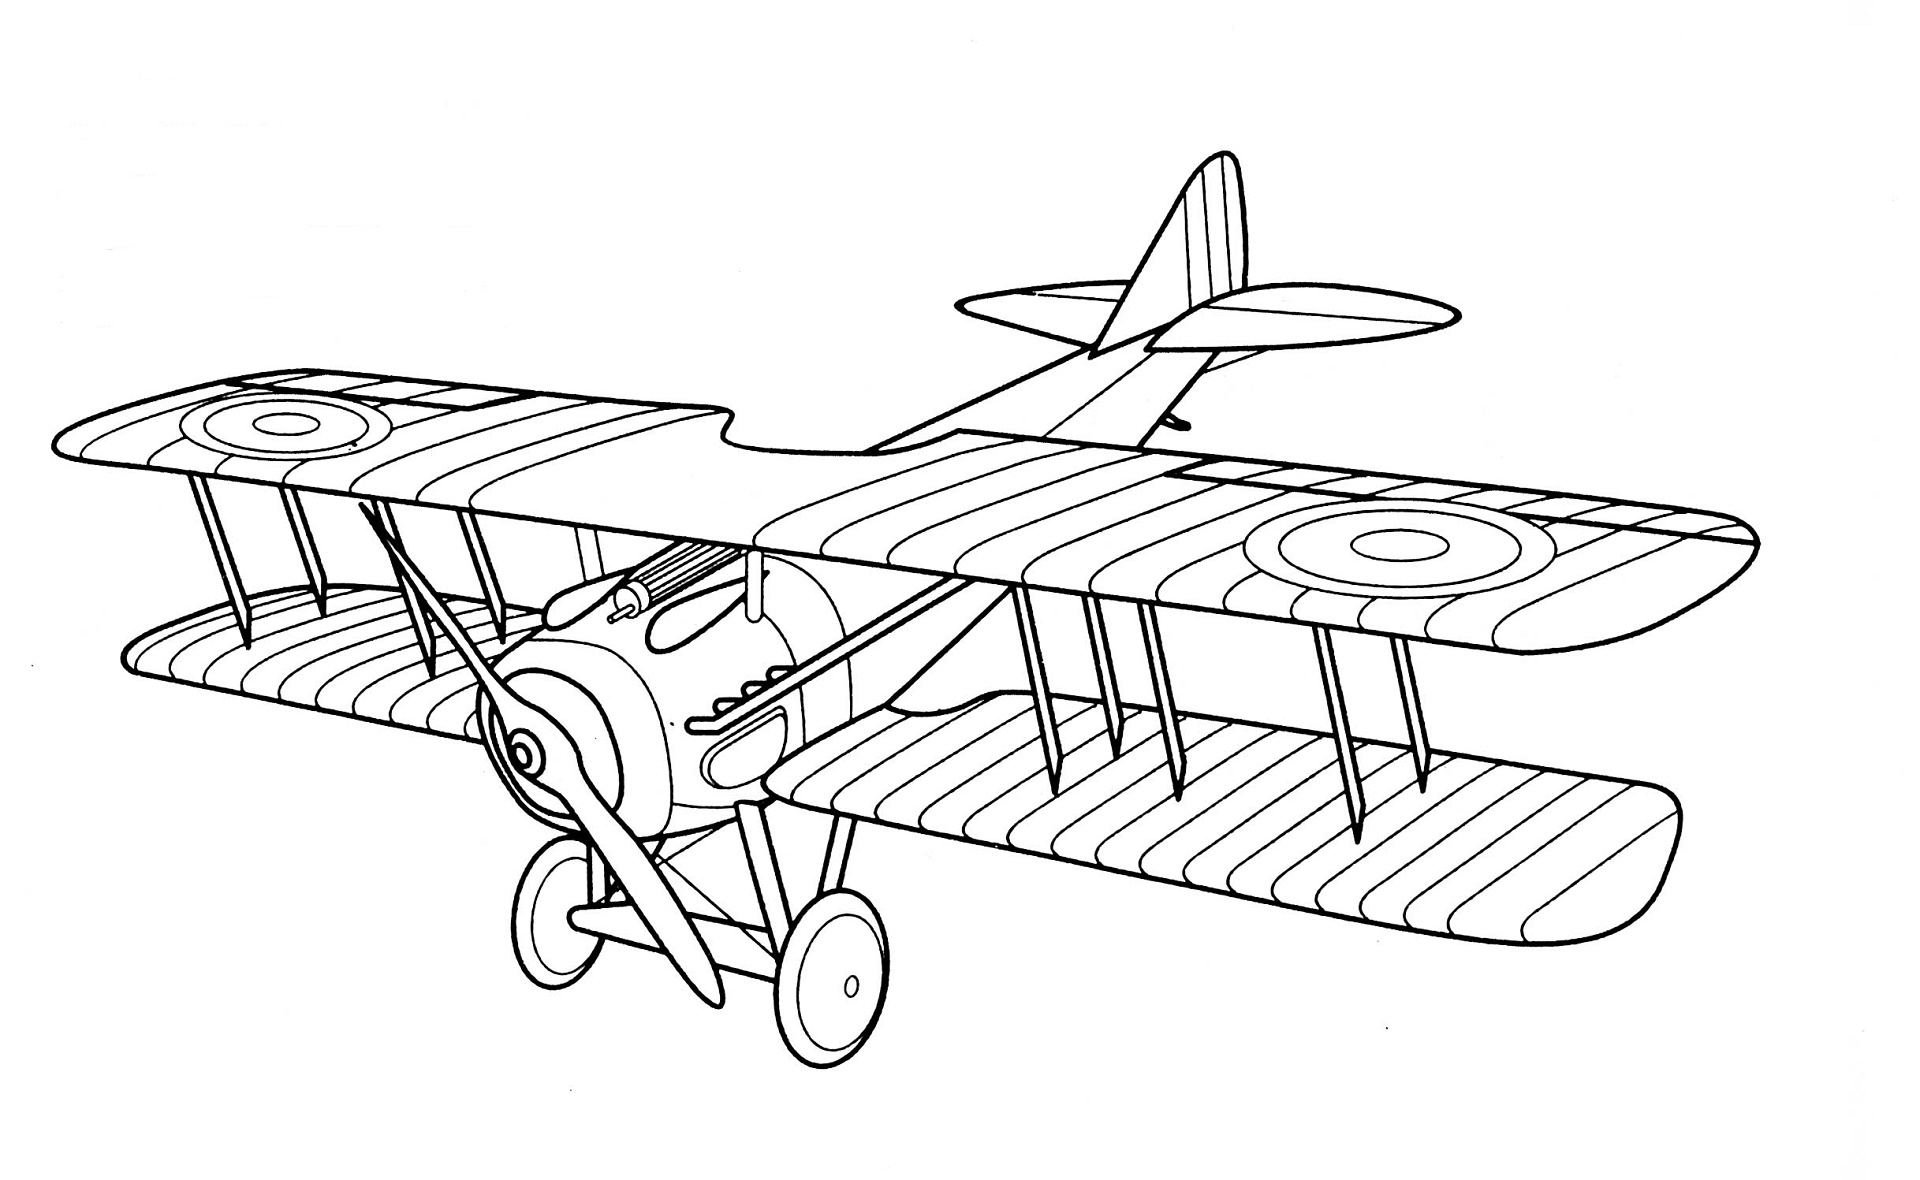 free vintage airplane coloring pages - photo#10